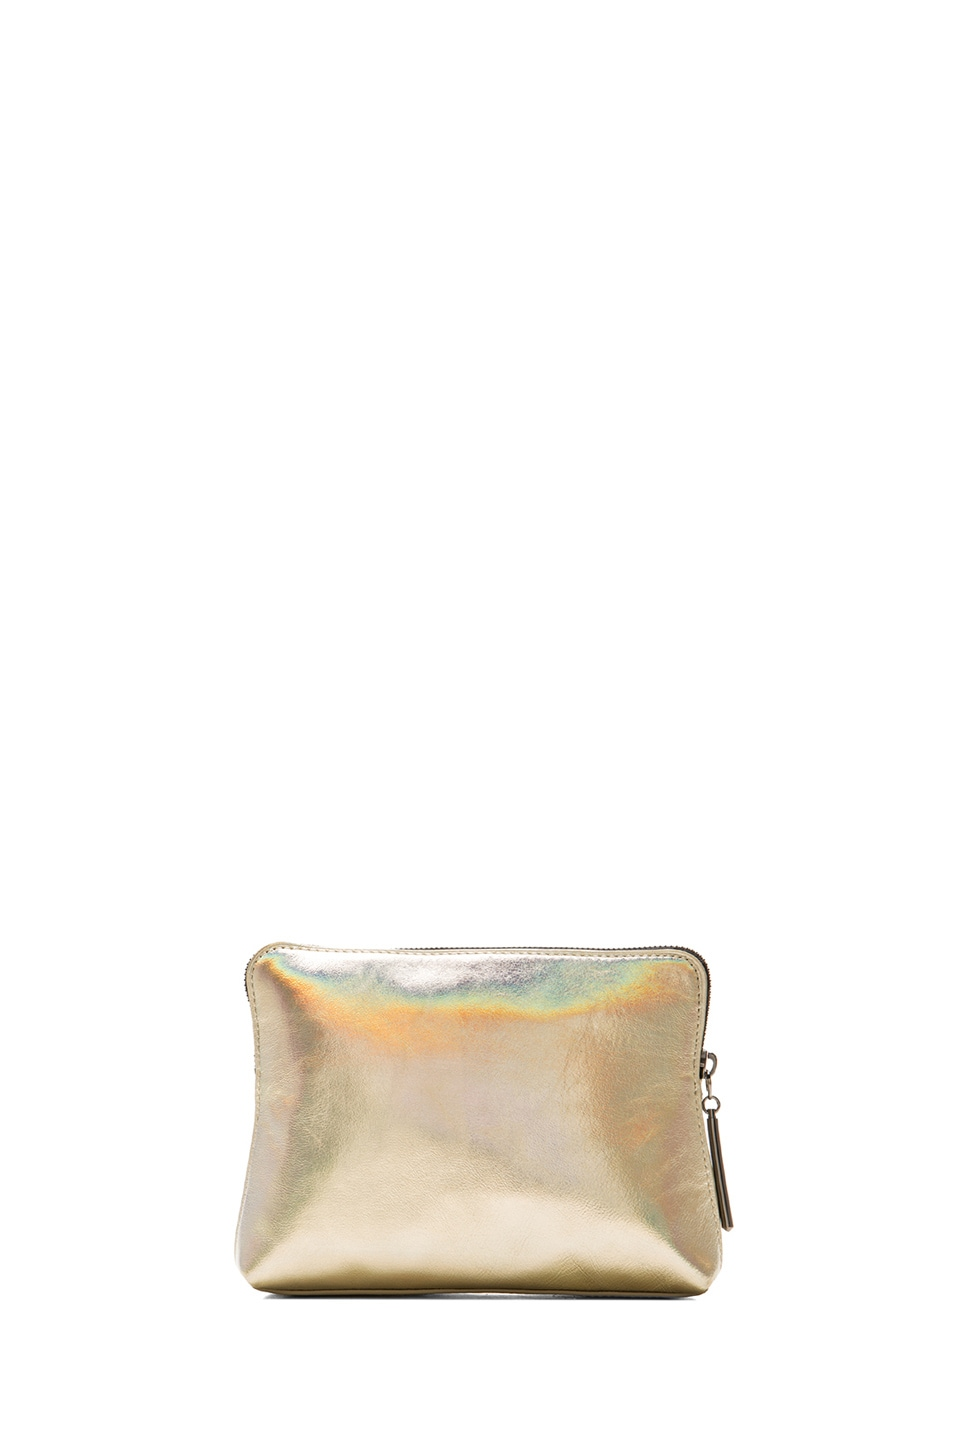 Image 2 of 3.1 phillip lim OMG 31 Second Pouch in Warm Silver & Gunmetal